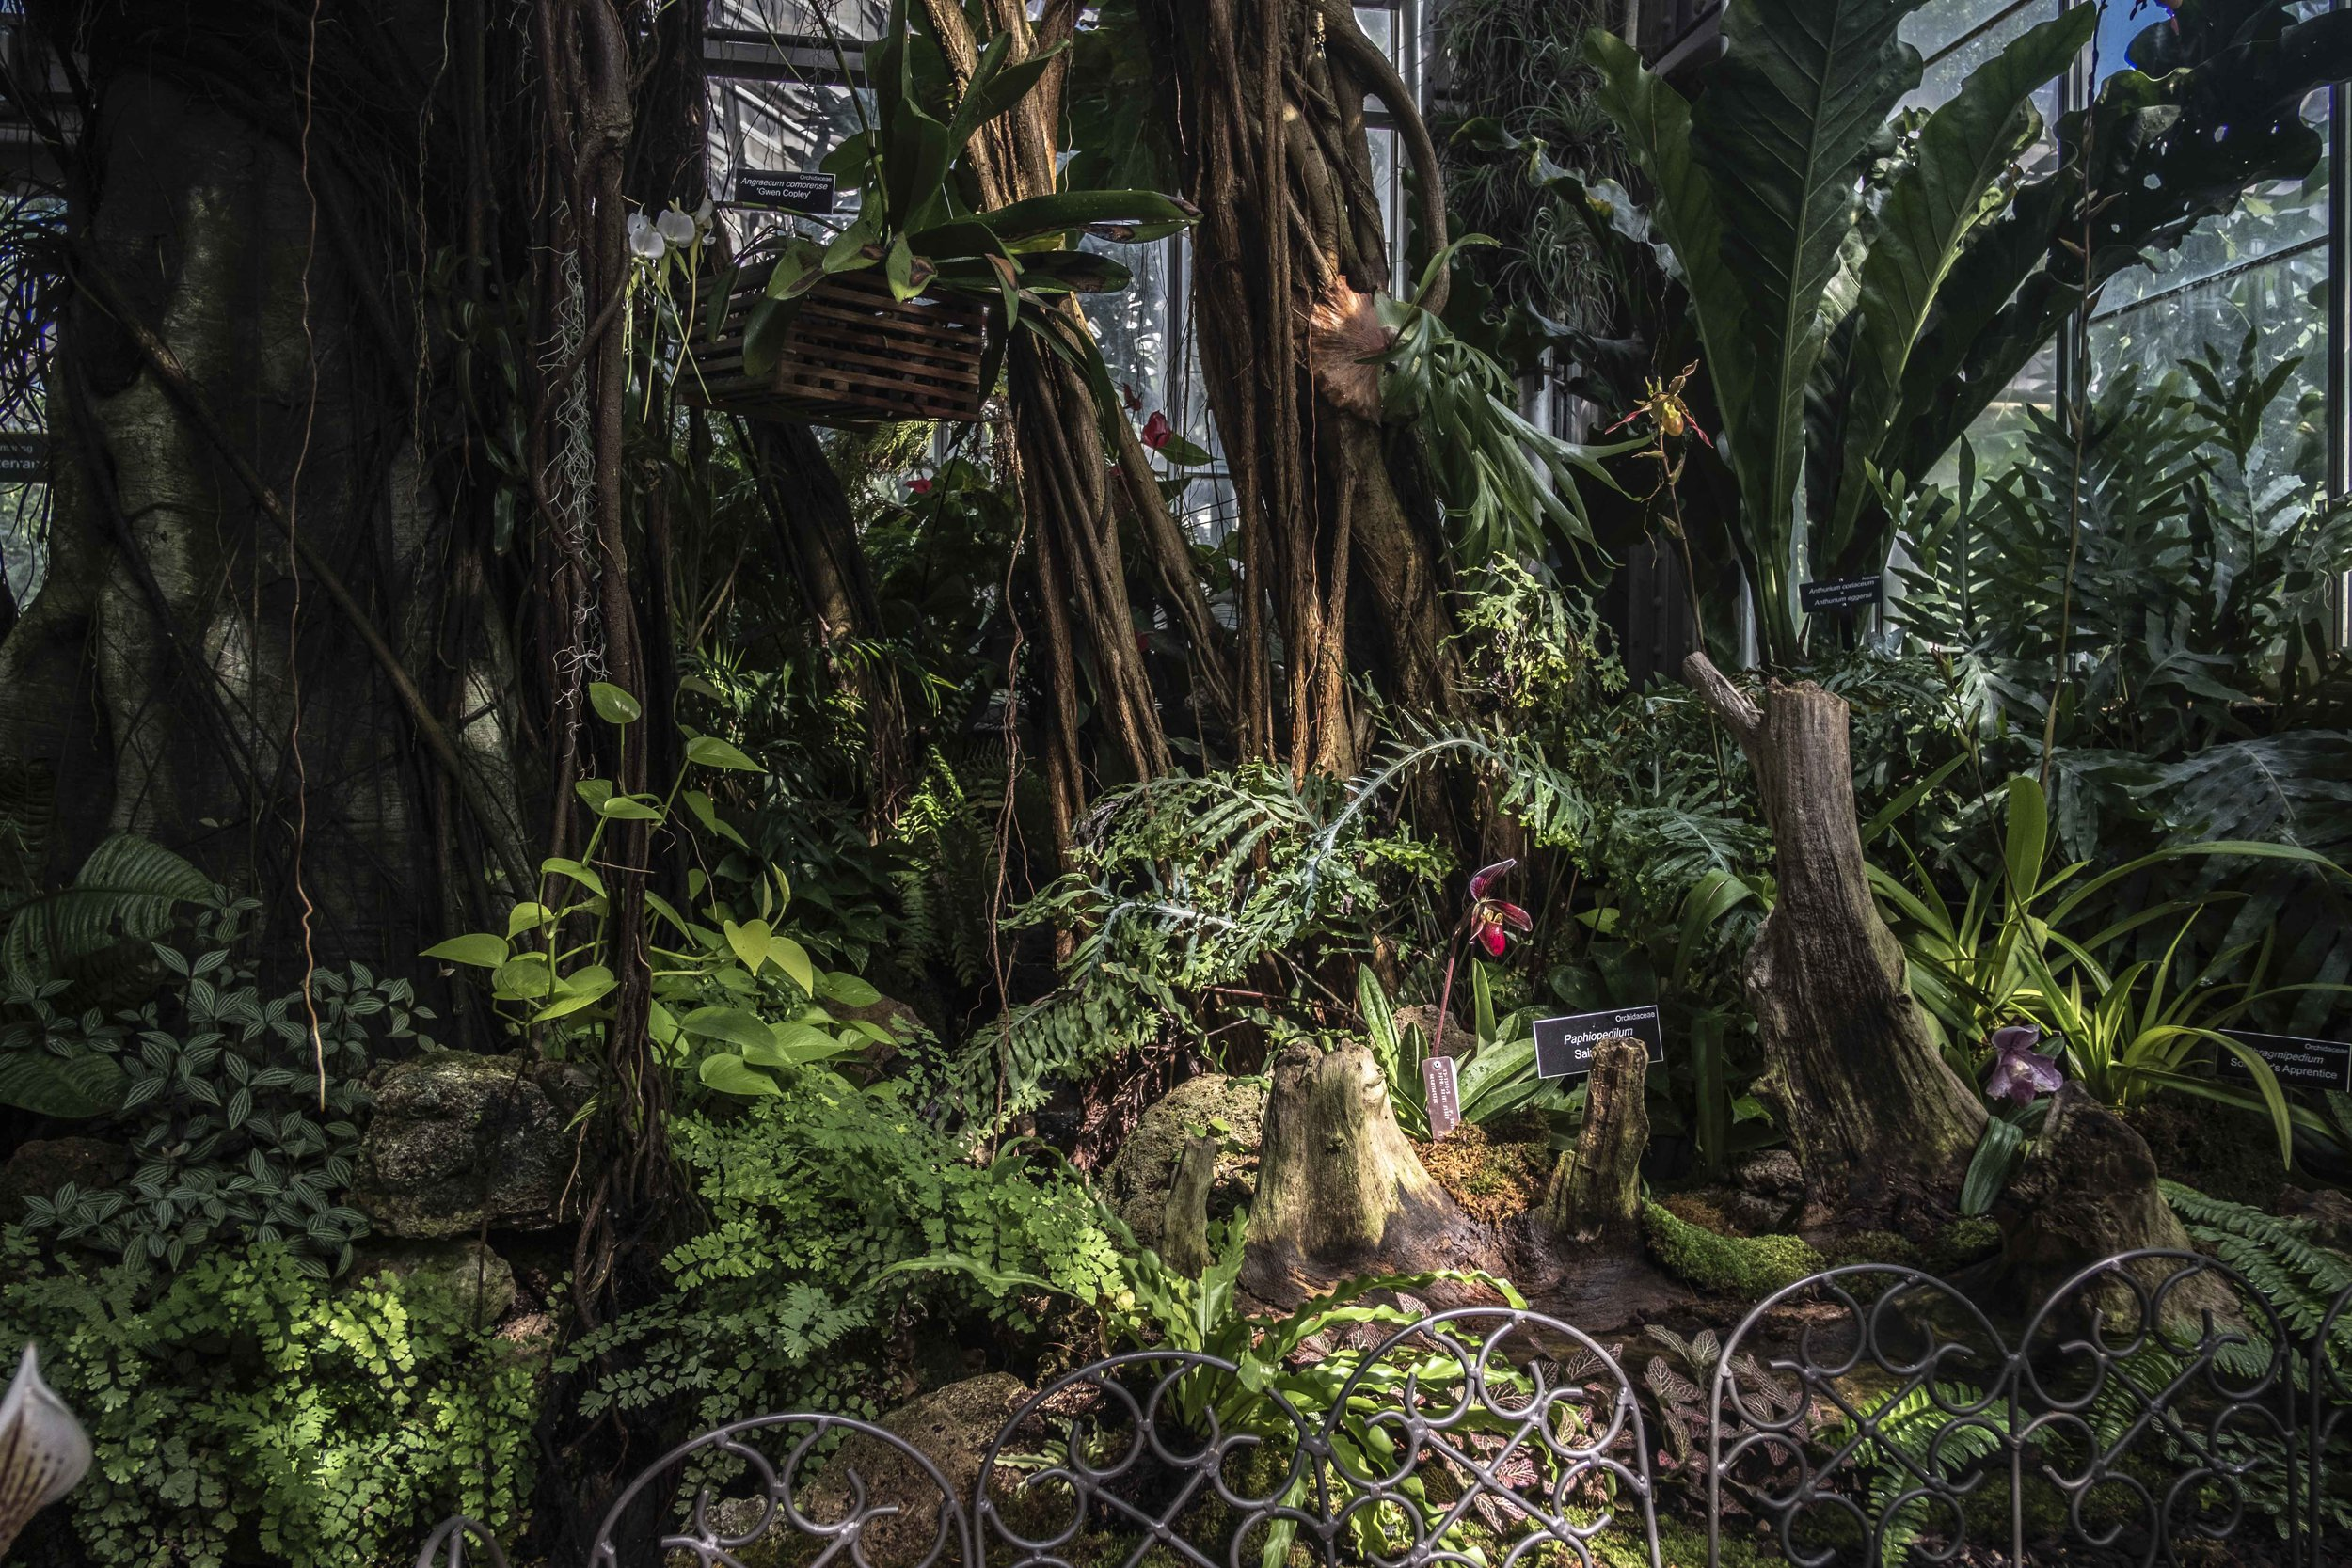 The orchid room is another place that just never translates into photos. There are blooming orchids surrounding you on all sides and the relatively small space makes it difficult to step back and show this magical little slice of jungly heaven.